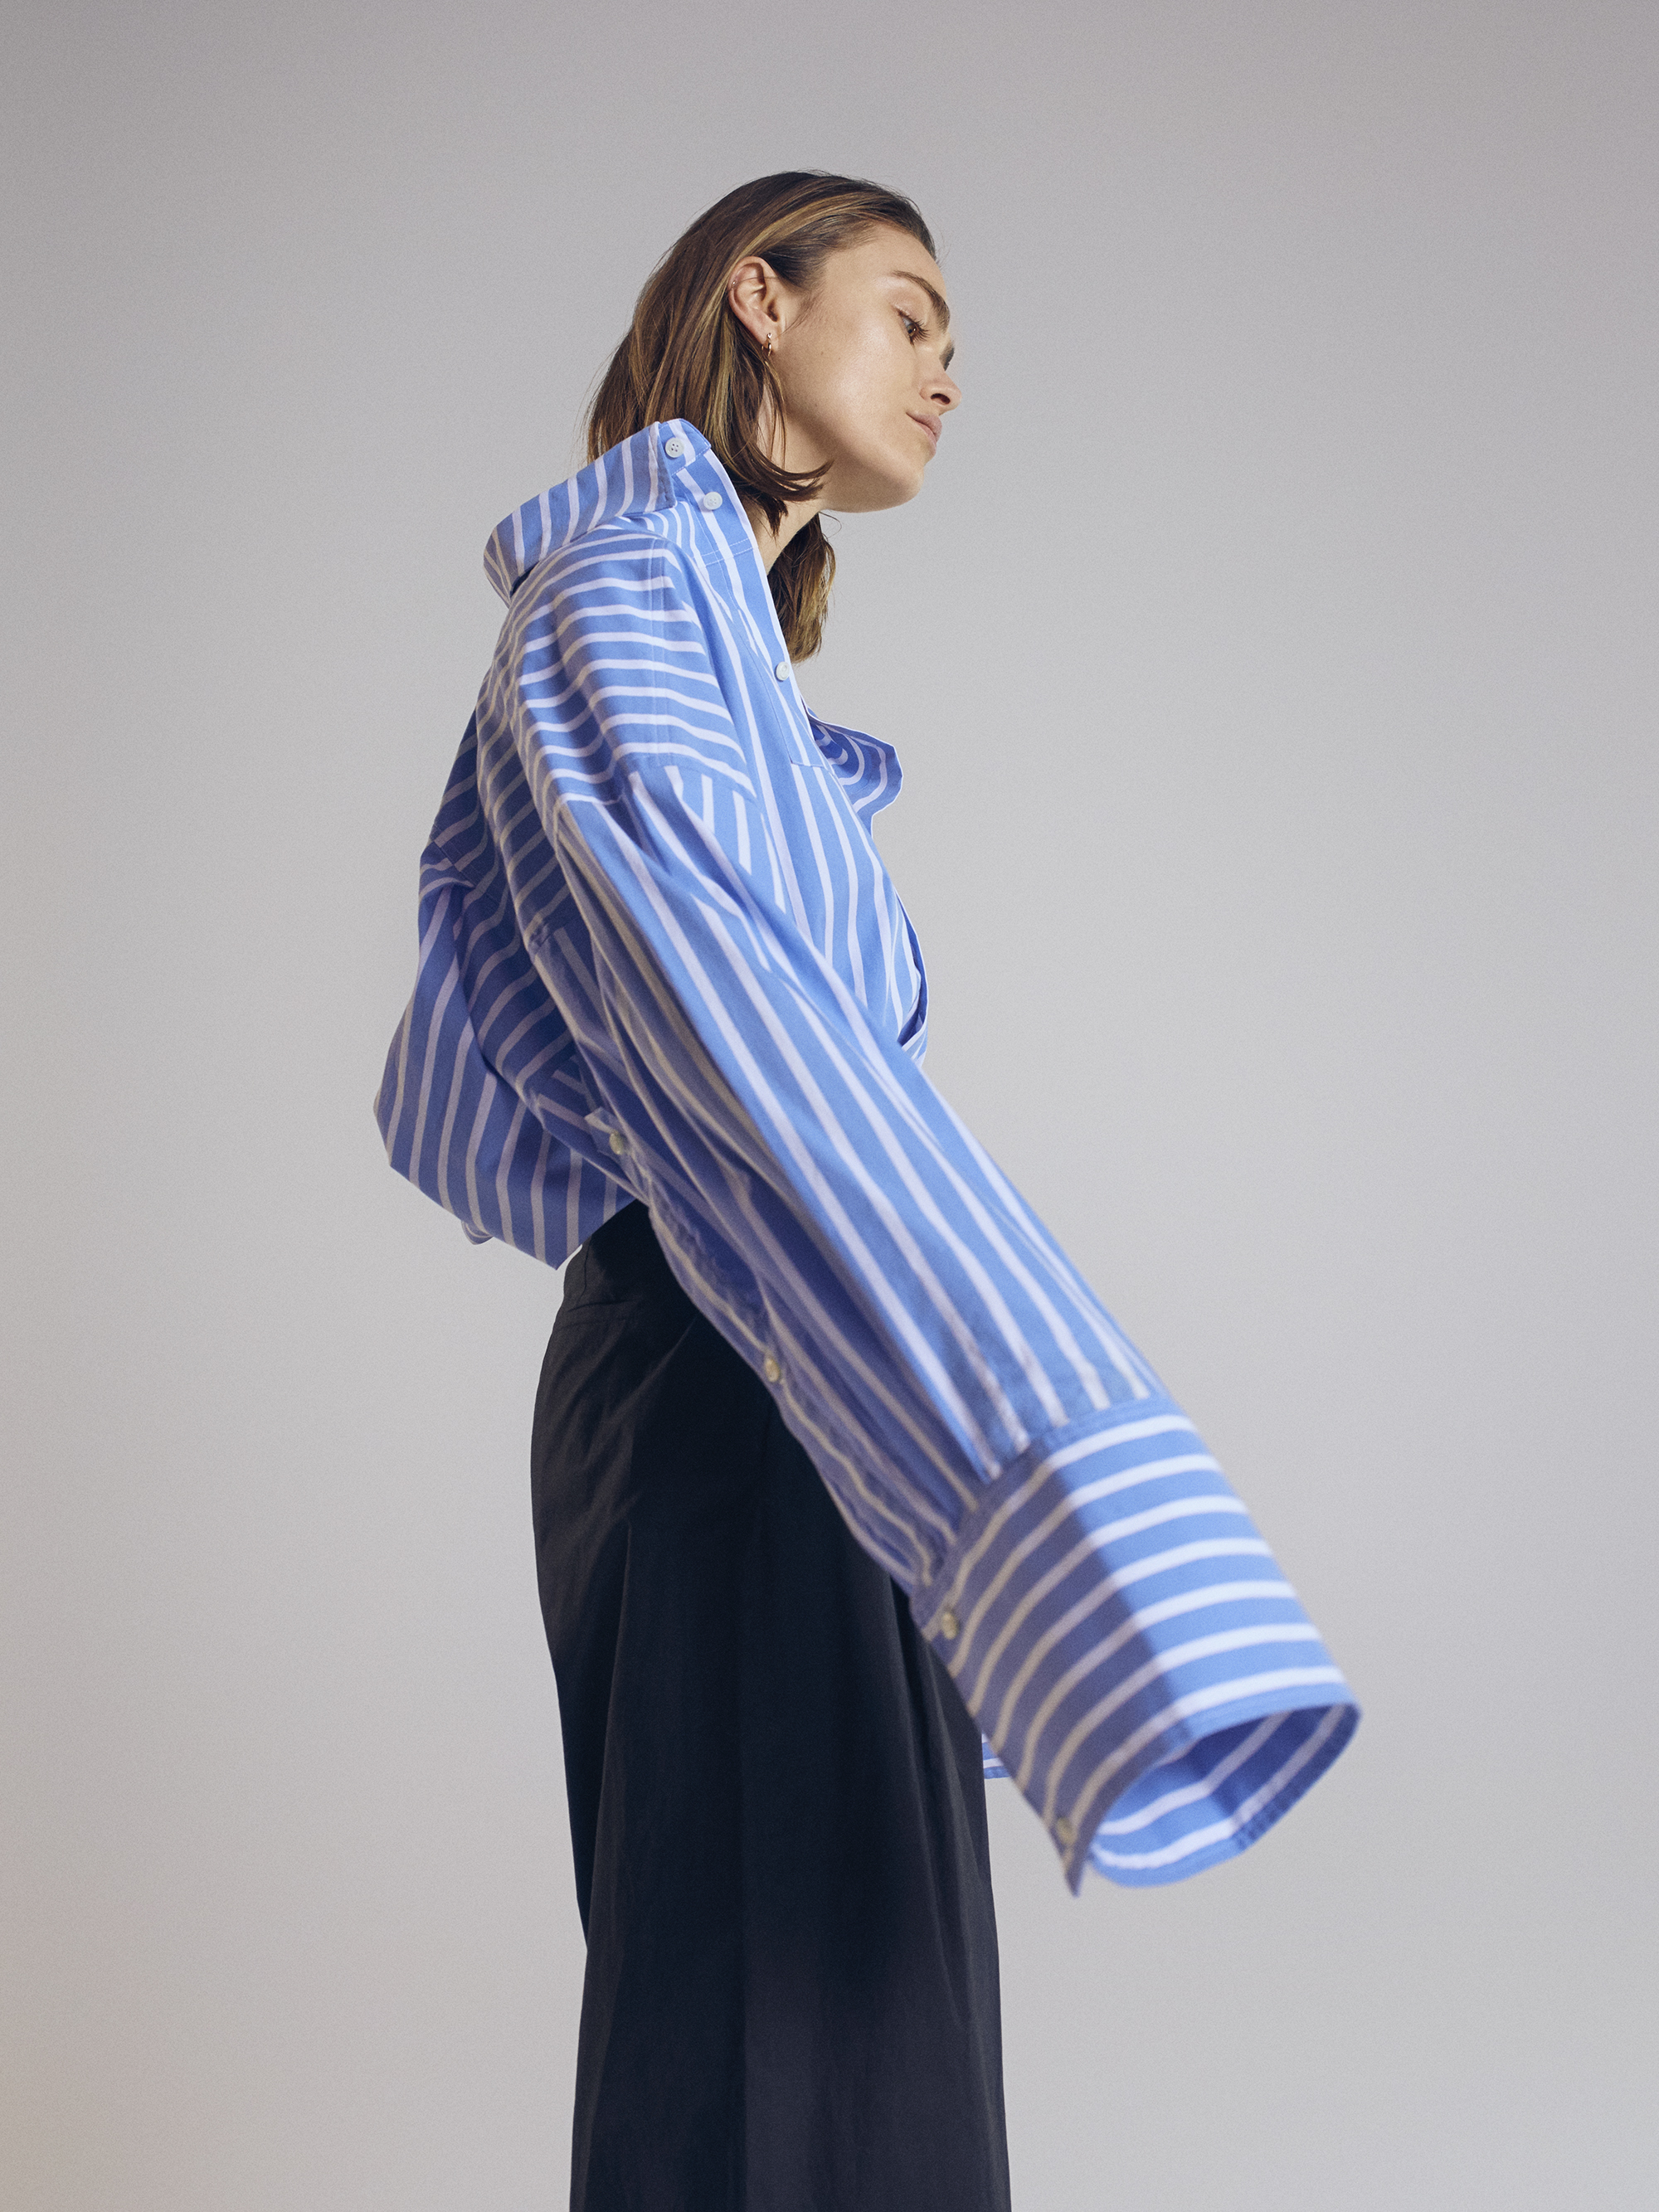 Oversized striped shirt  Schuellerdewaal . Pleated trousers  Tse.  Earring  Cos